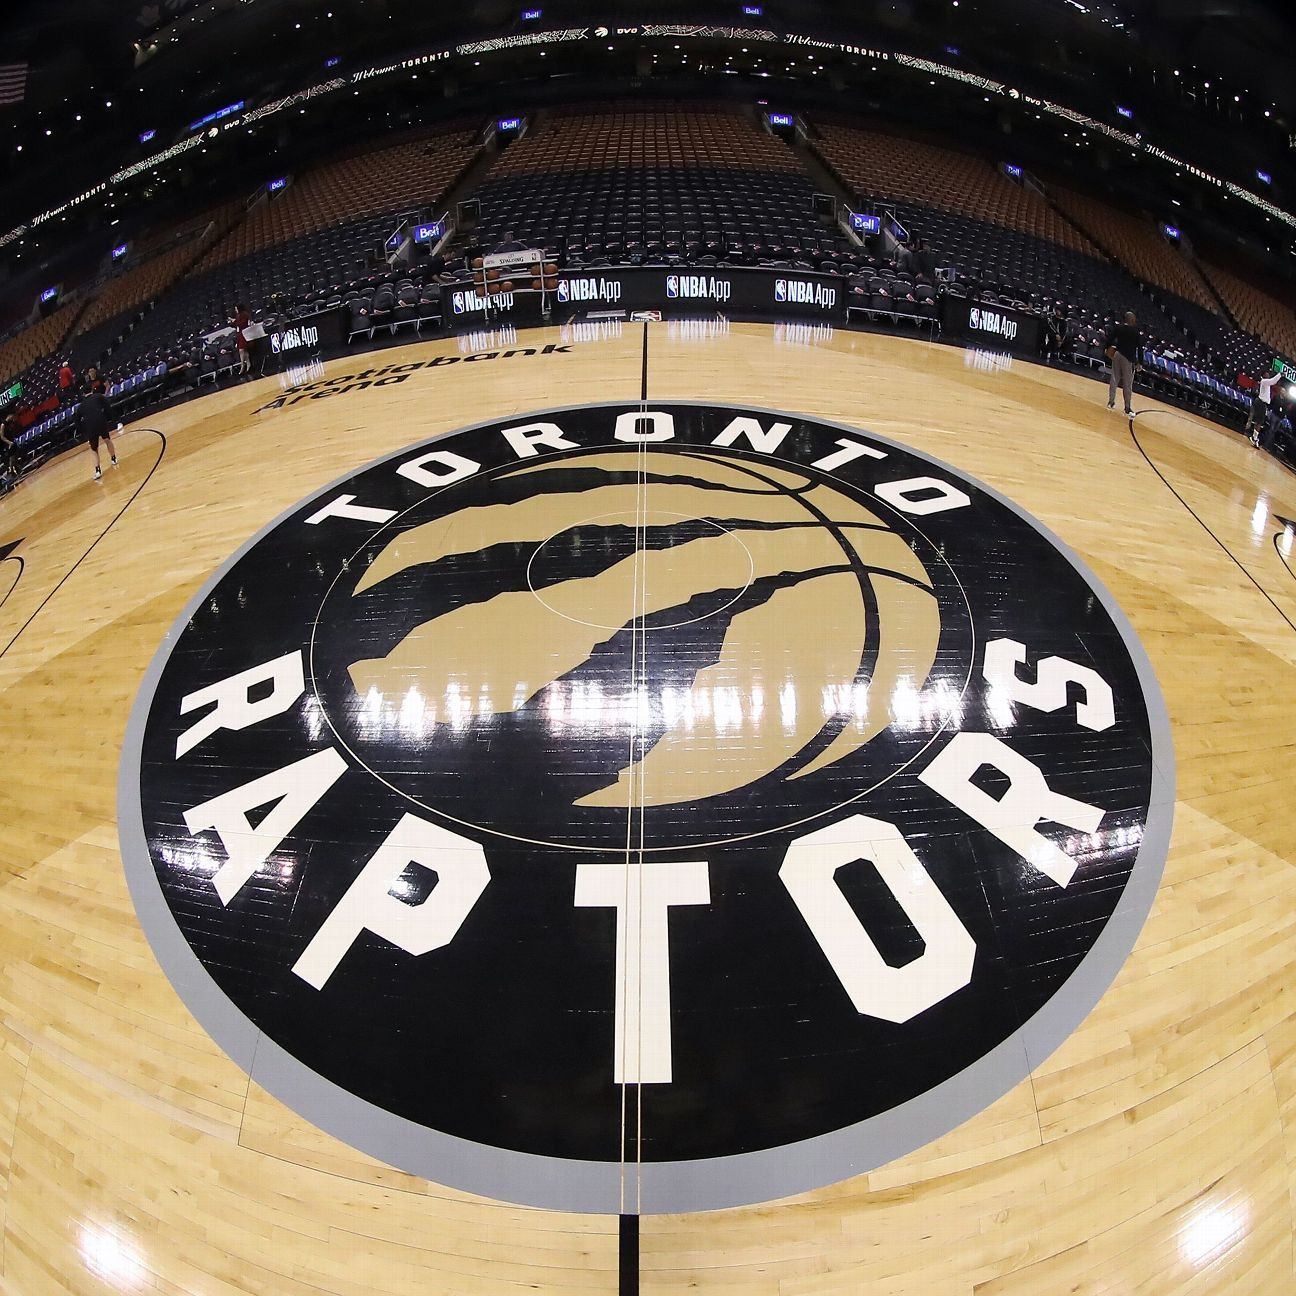 Toronto Raptors to play home games in Tampa to open NBA season